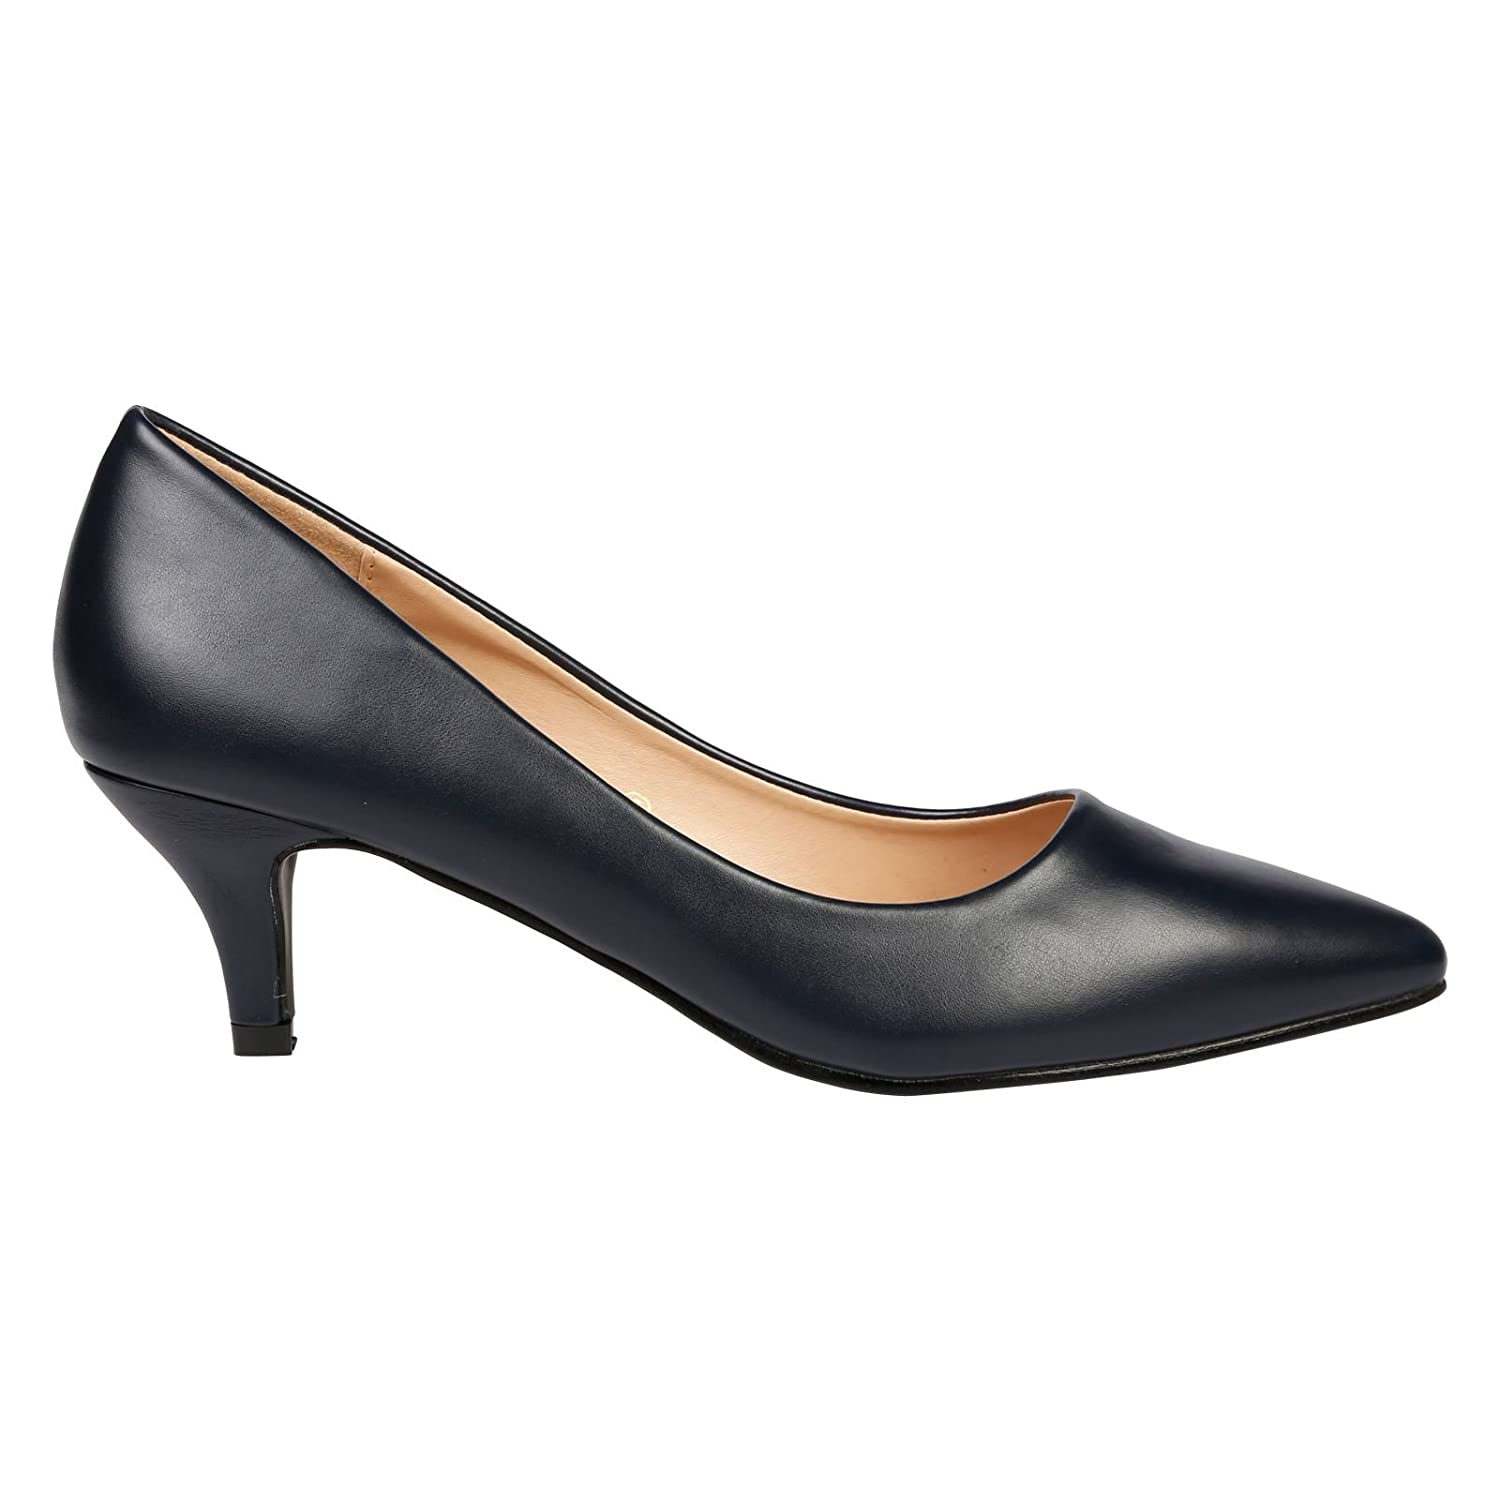 6f8cda642a40 ByPublicDemand Miranda Womens Low Kitten Heel Slip On Pointed Toe Court  Shoes  Amazon.co.uk  Shoes   Bags